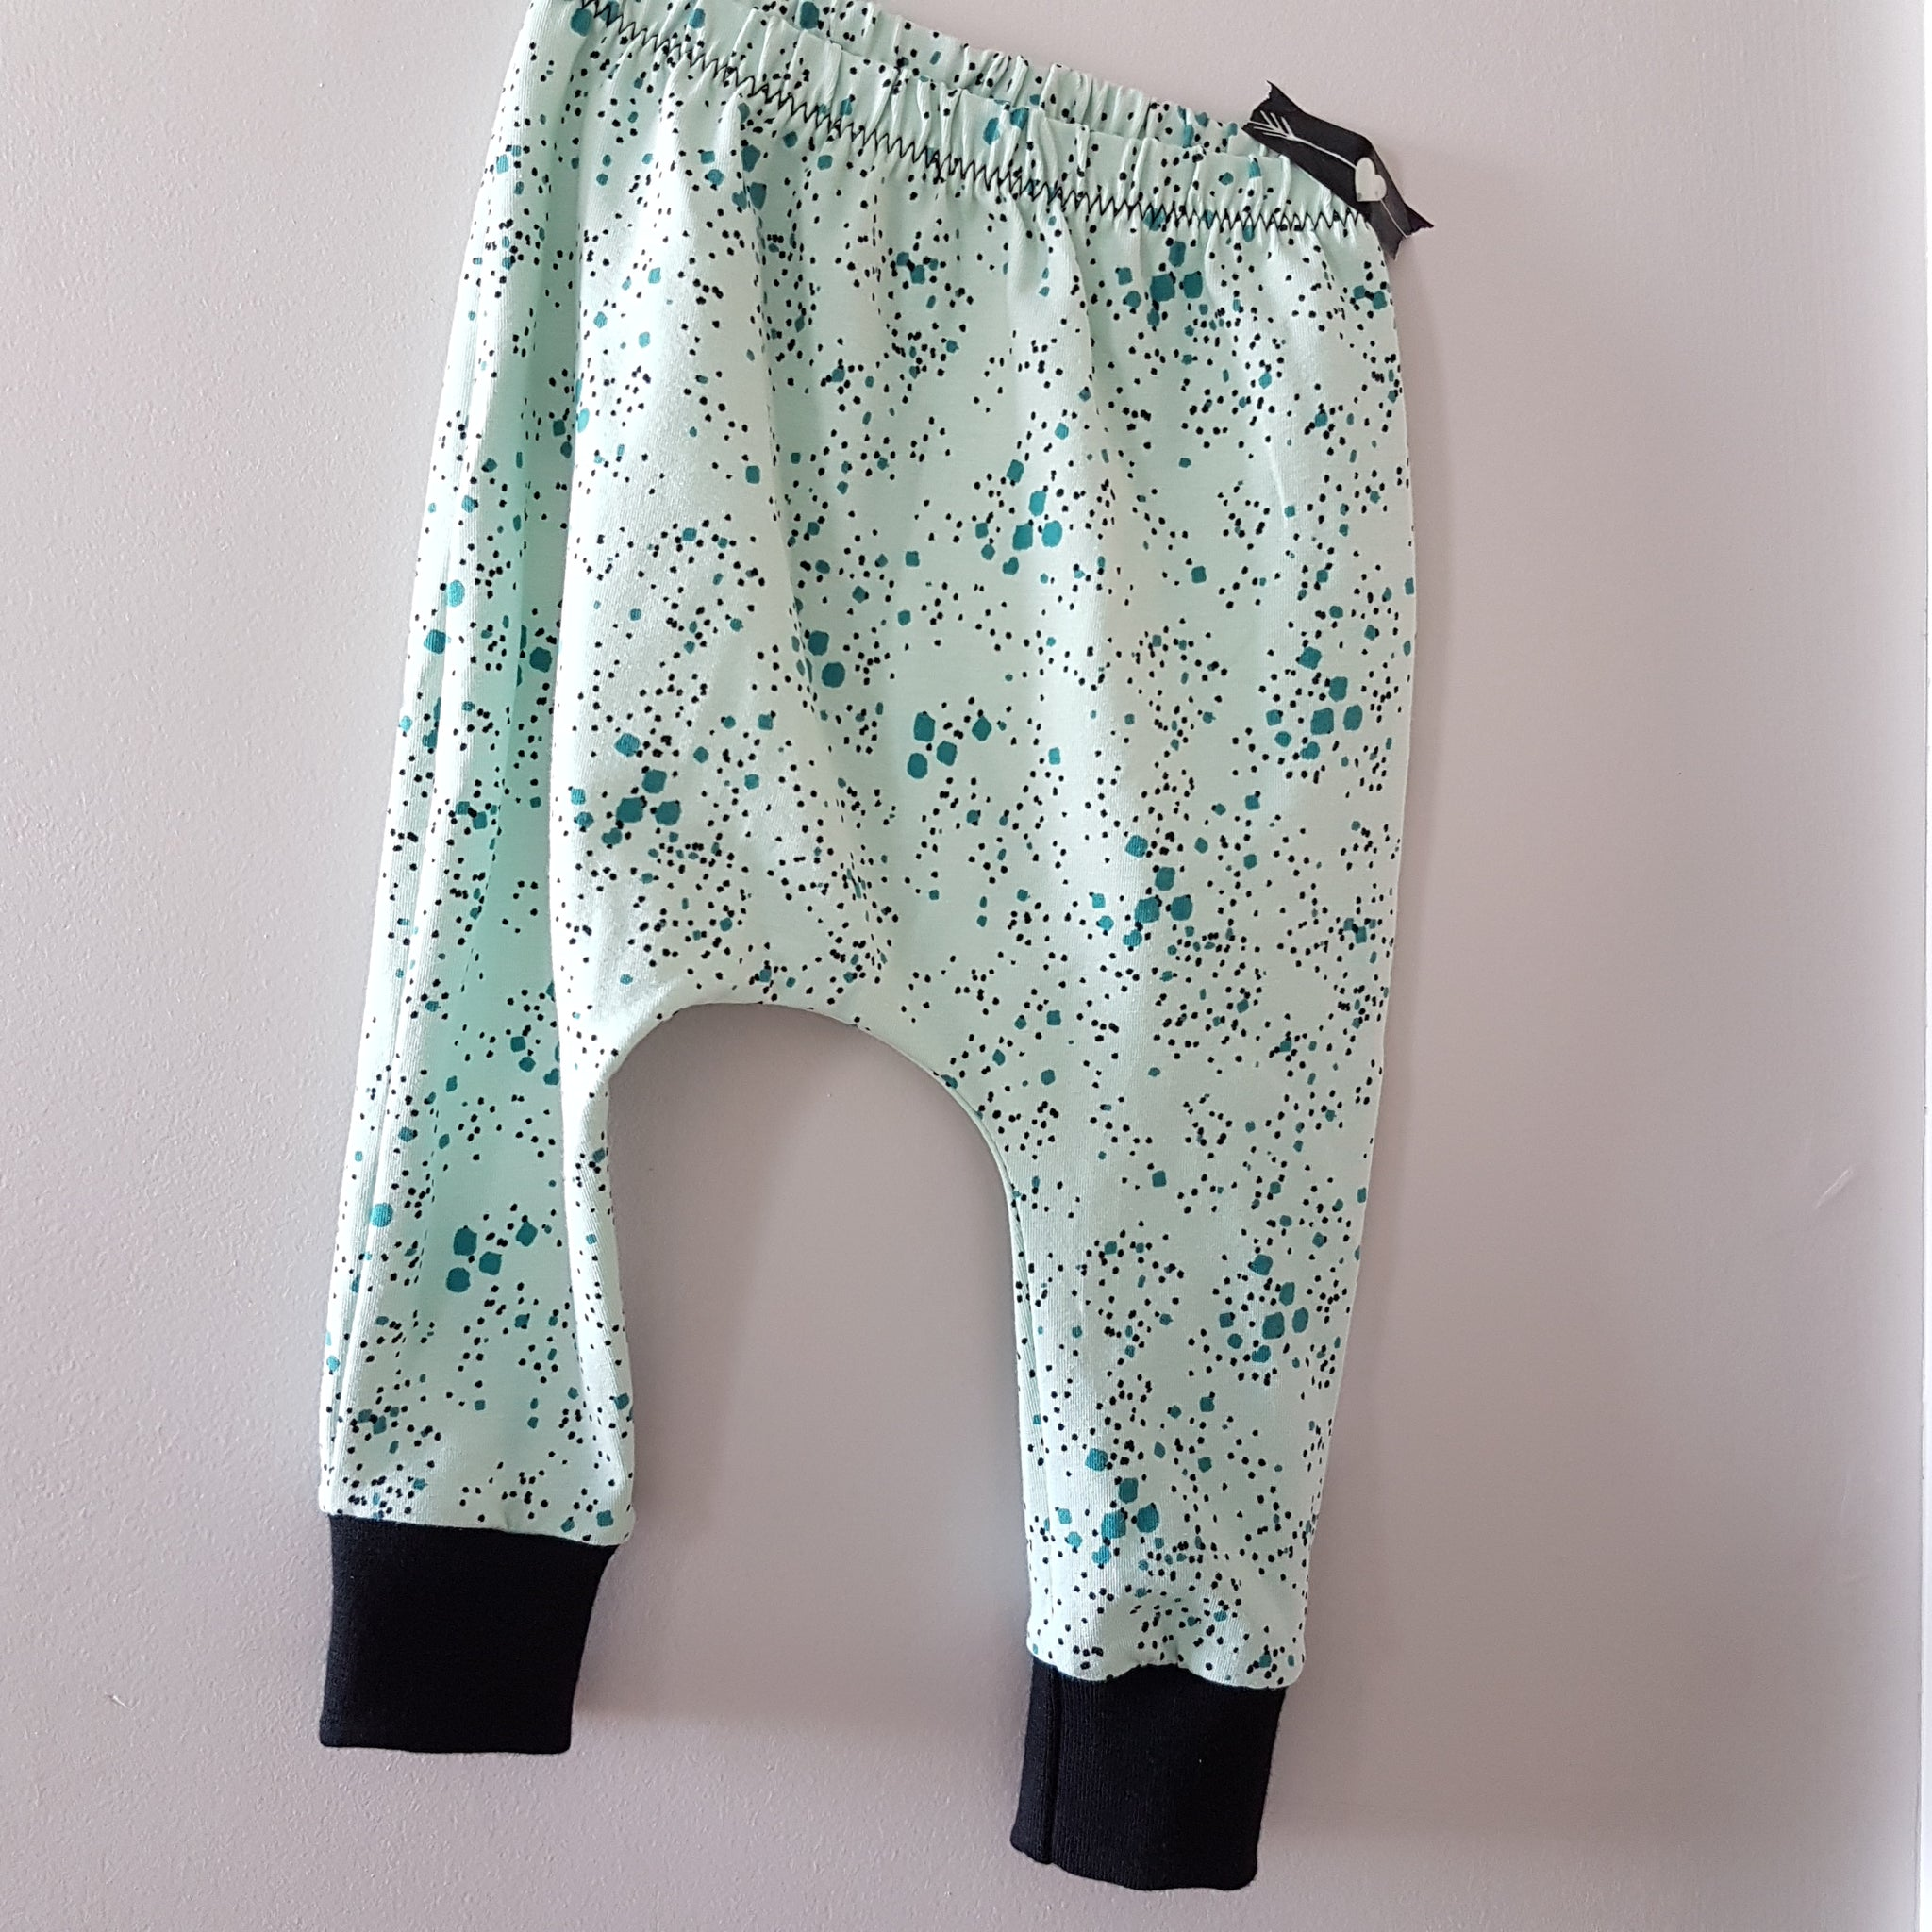 Speckled Harem Trousers - Hello Pickle!